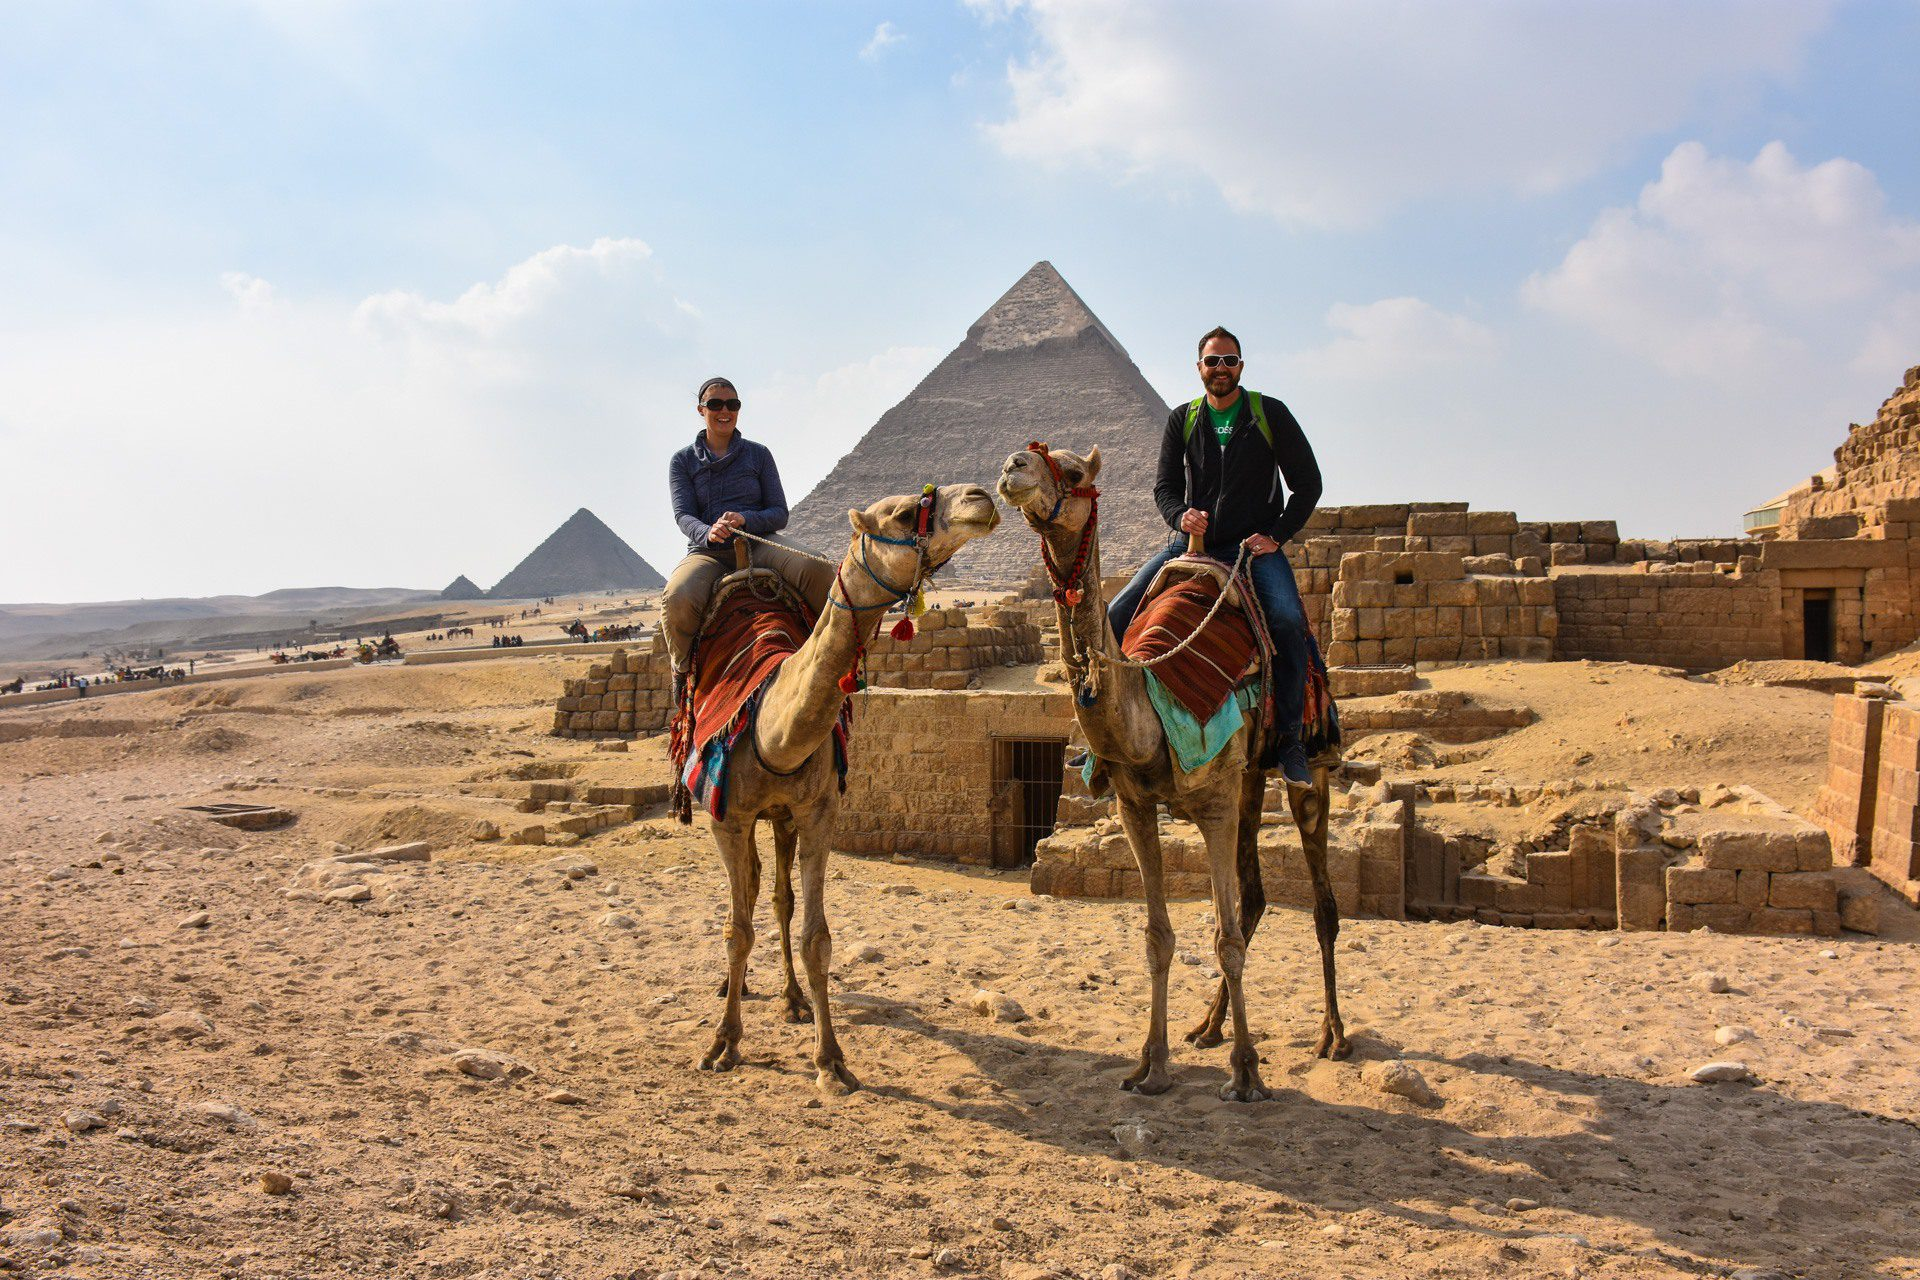 Exploring the Pyramids of Egypt.